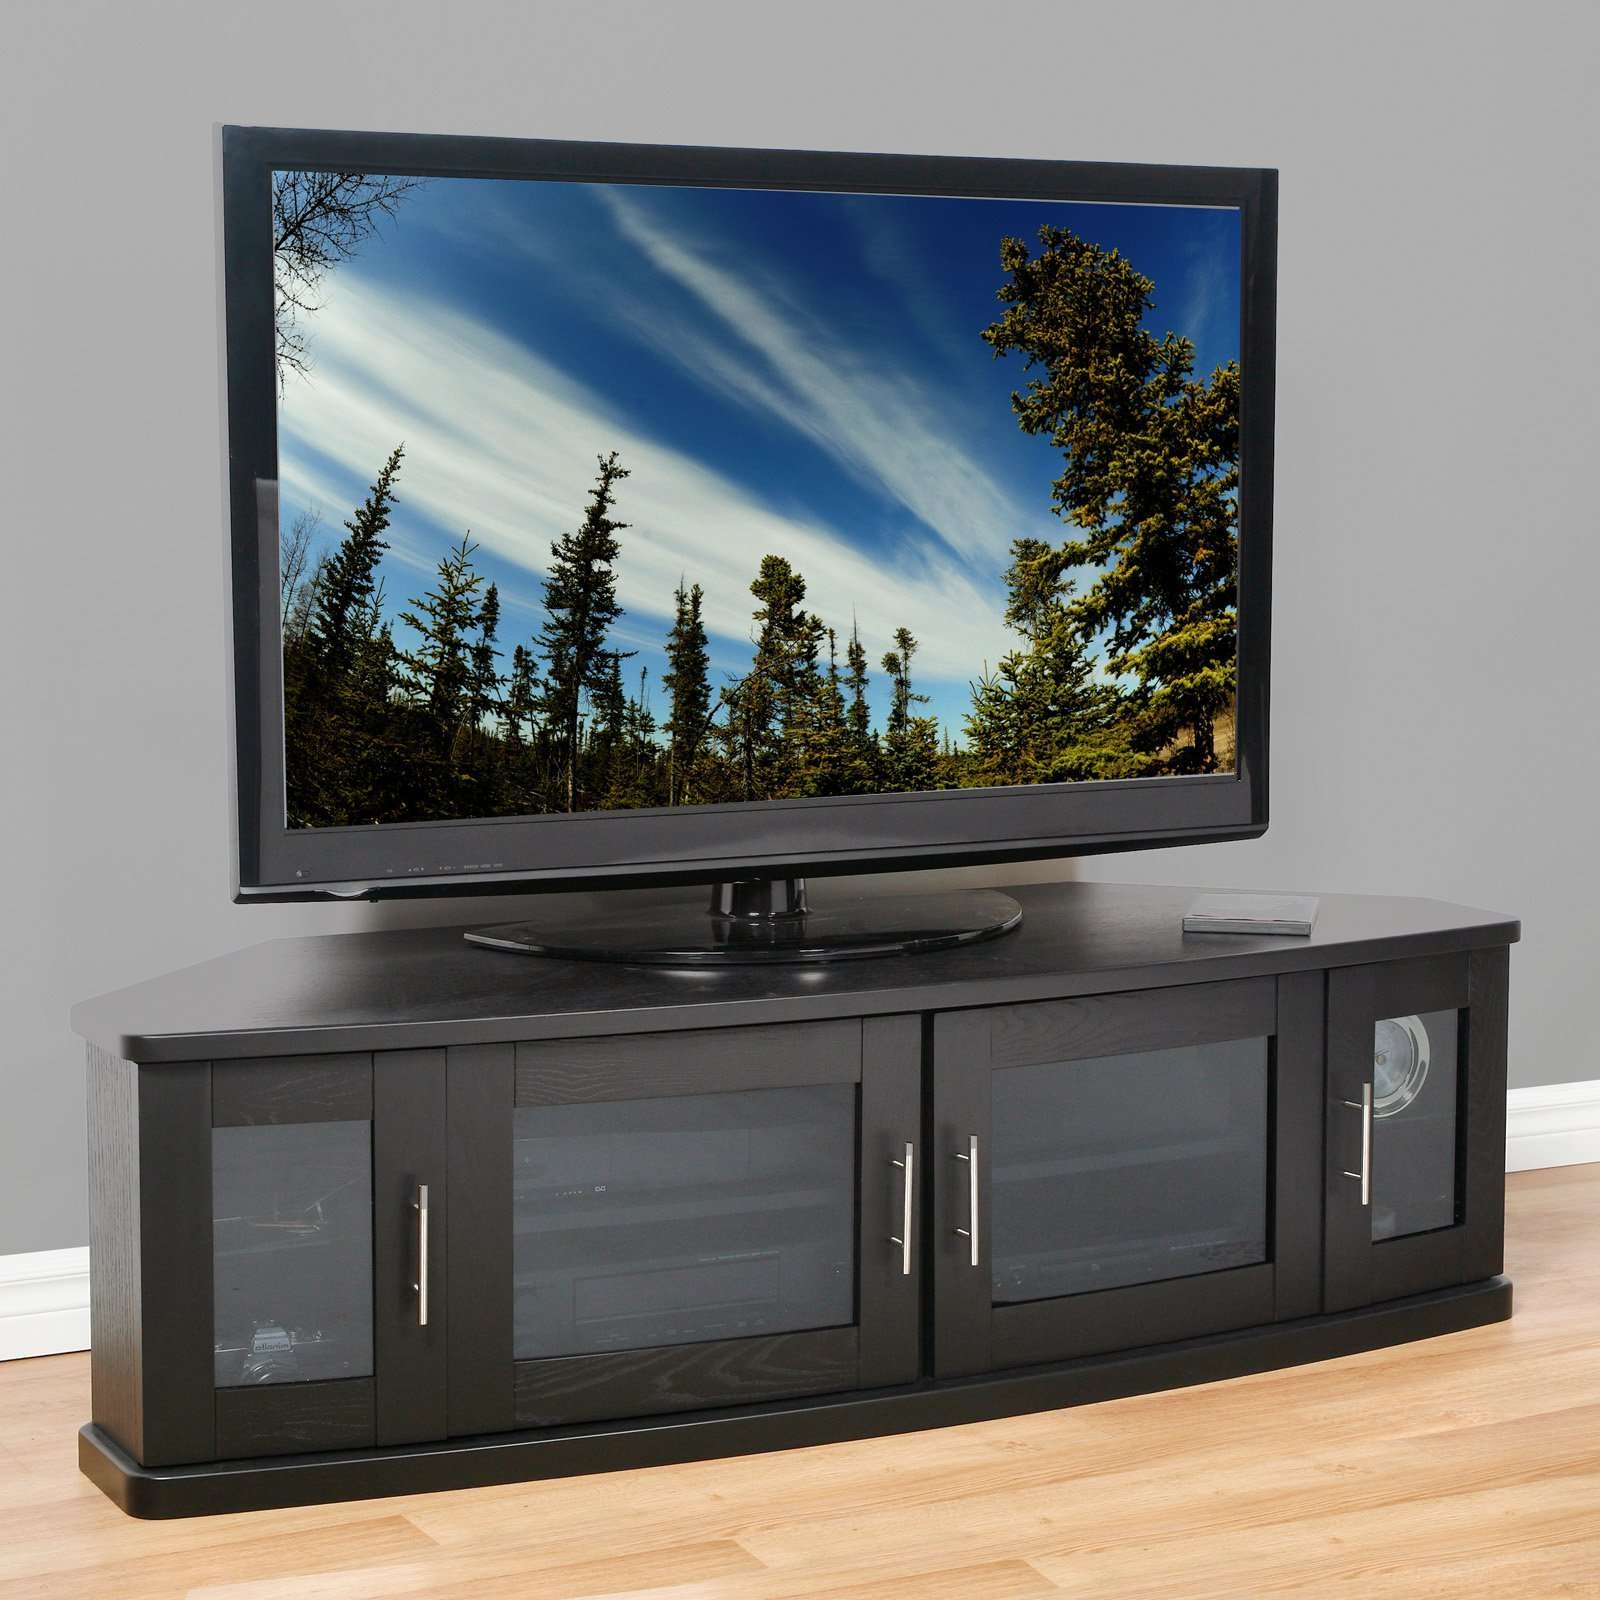 Plateau Newport 62 Inch Corner Tv Stand In Black – Walmart Pertaining To Corner Tv Cabinets For Flat Screen (View 20 of 20)